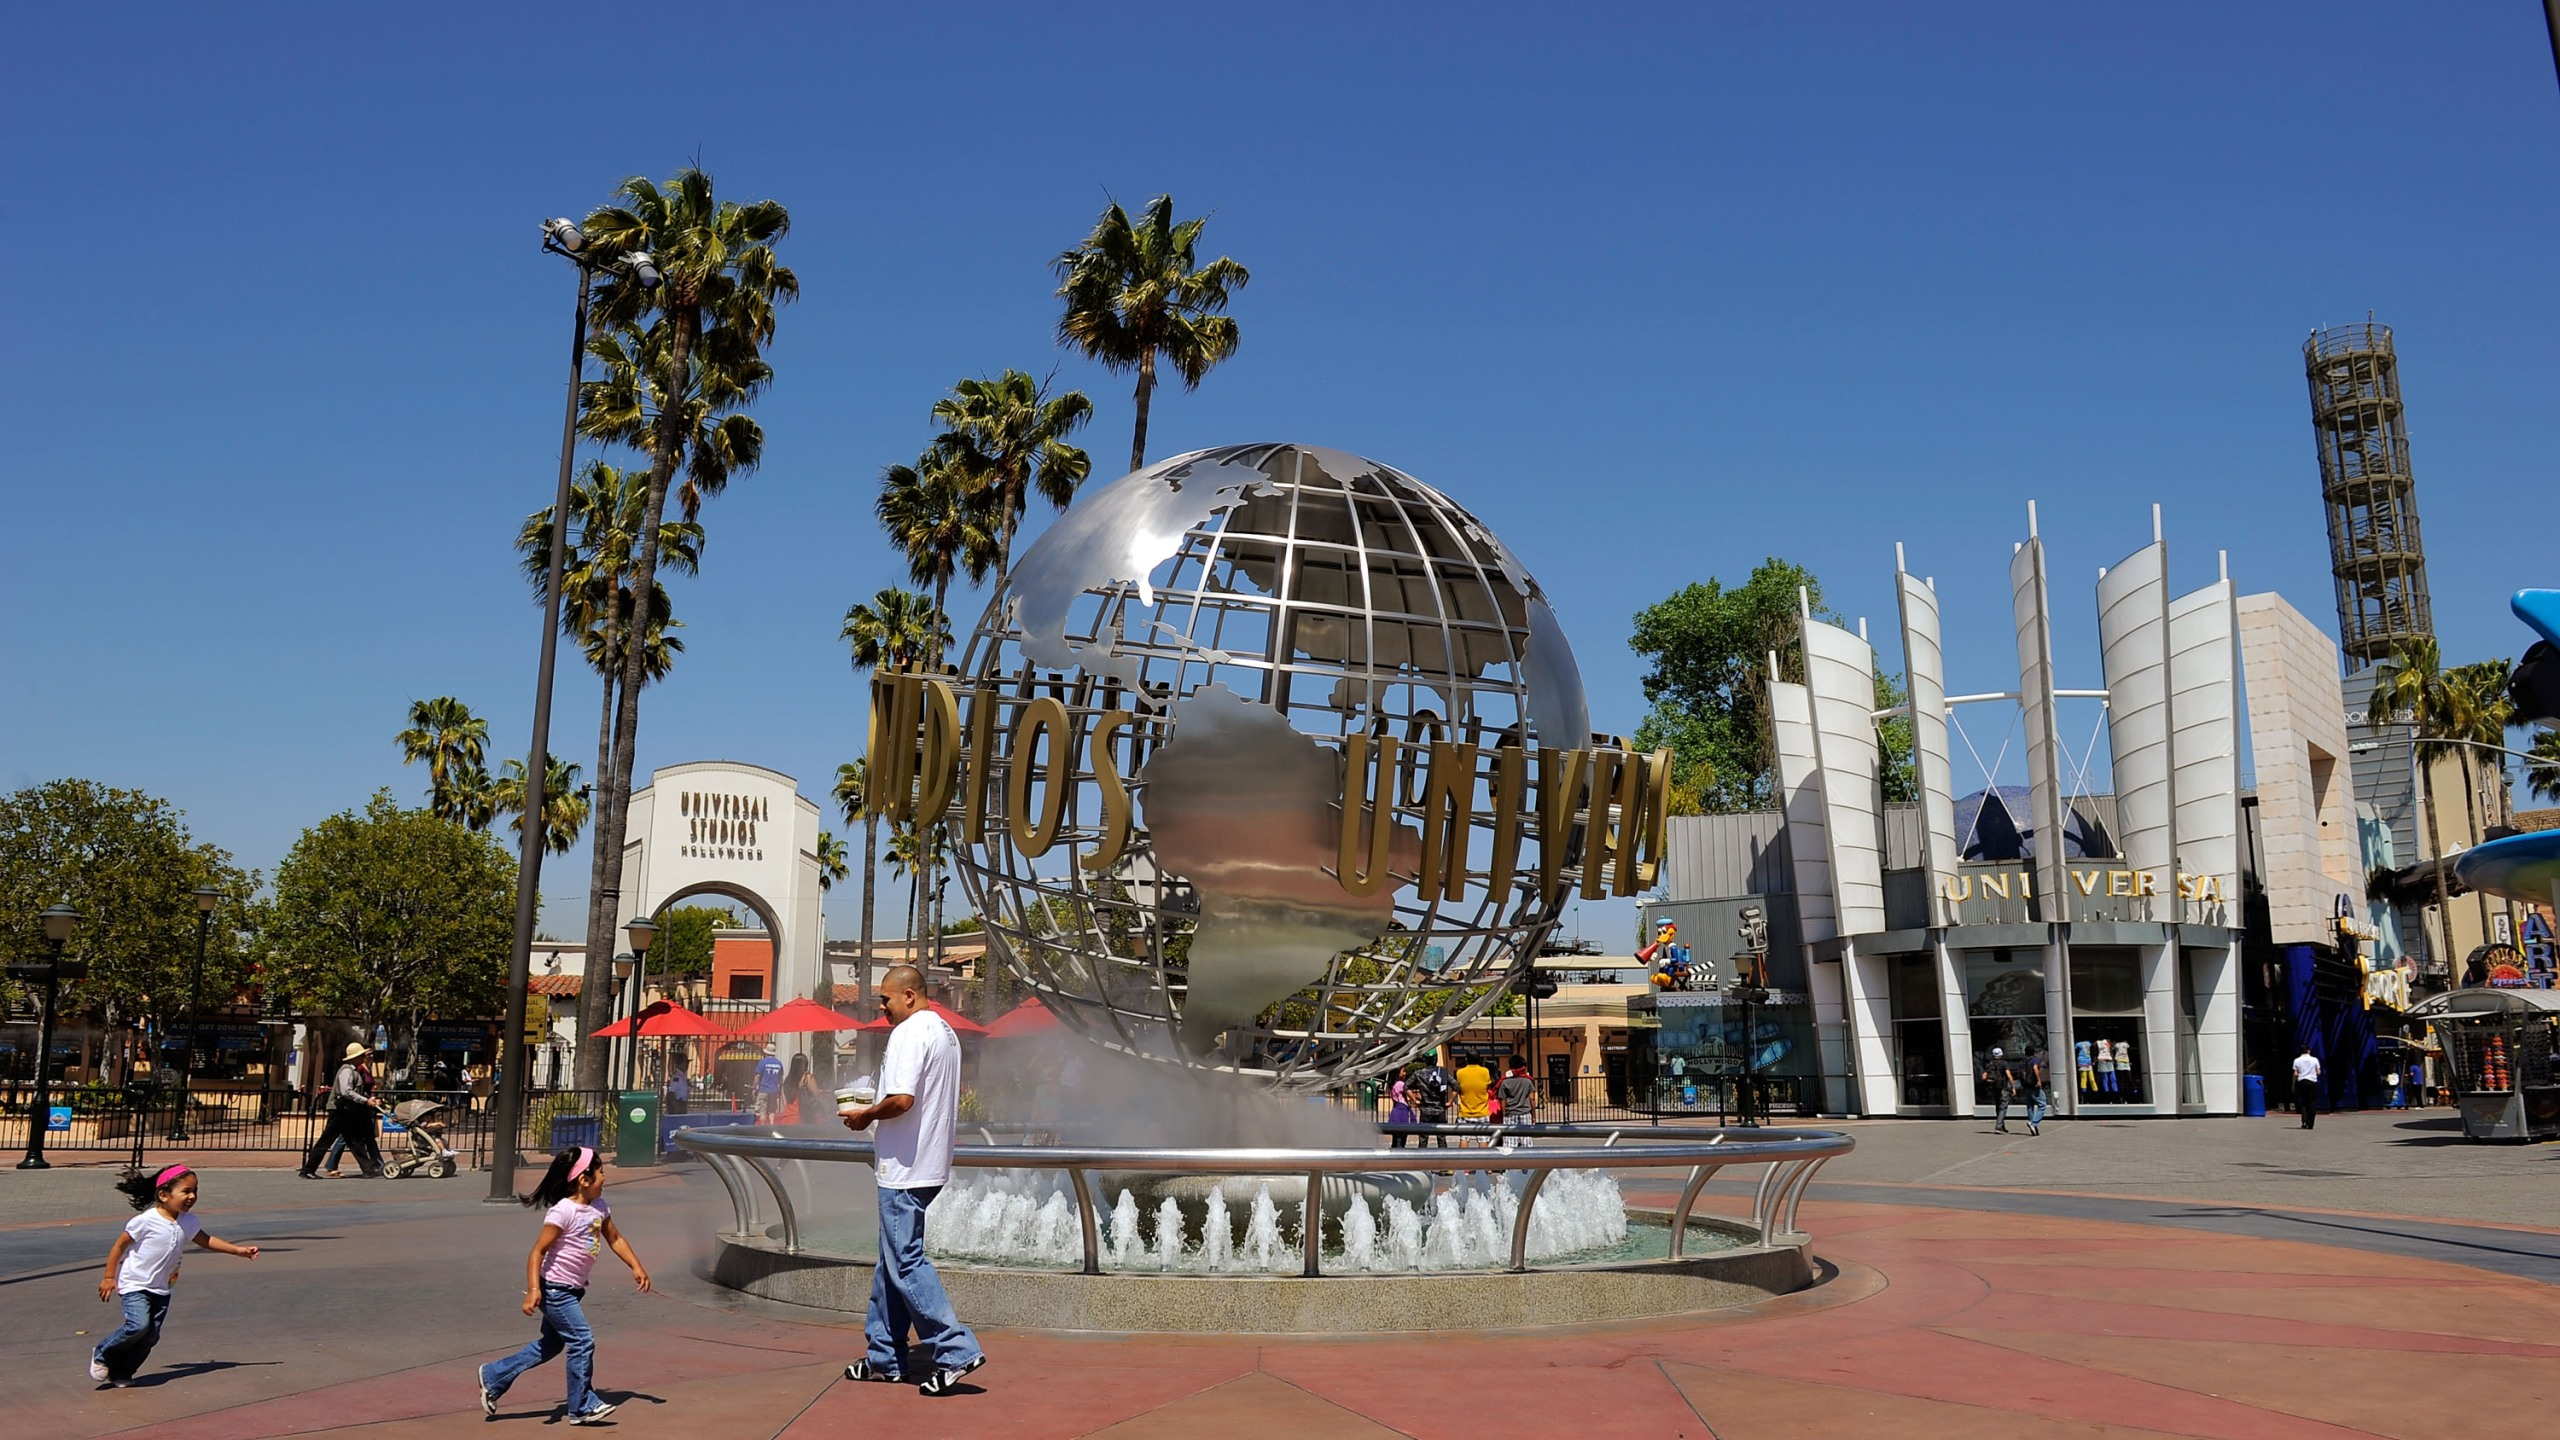 Toursits get their picture taken at the front entrance of Universal Studios Hollywood theme park on May 4, 2010. (Kevork Djansezian/Getty Images)